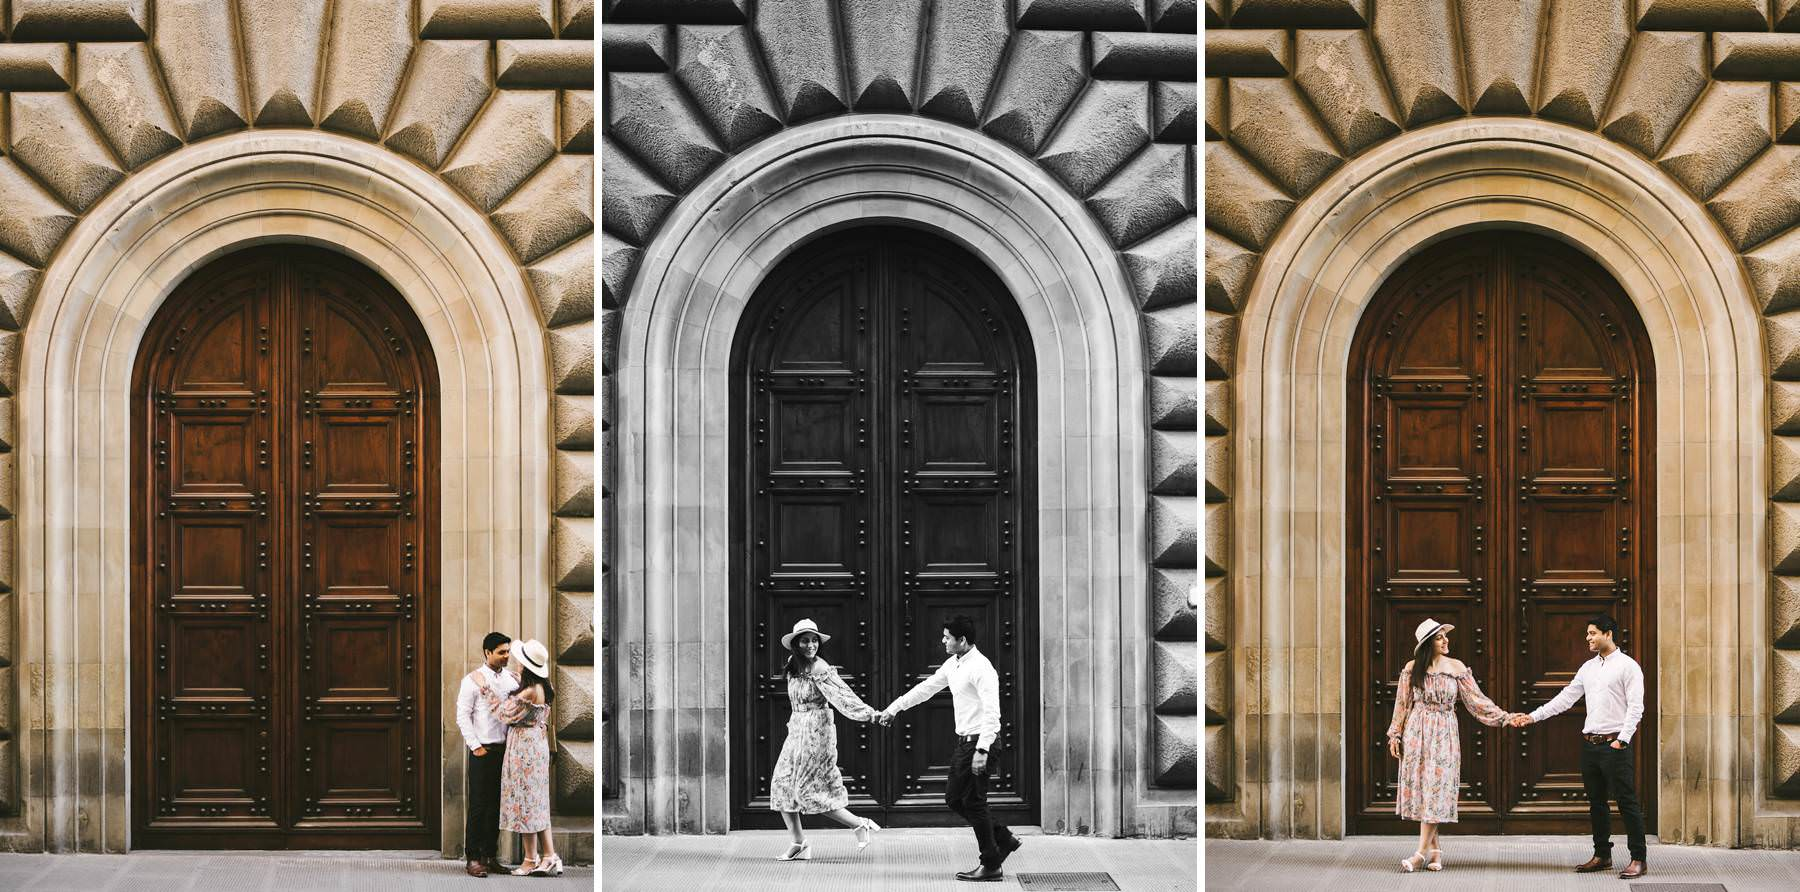 Florence early morning vacation engagement photo shoot